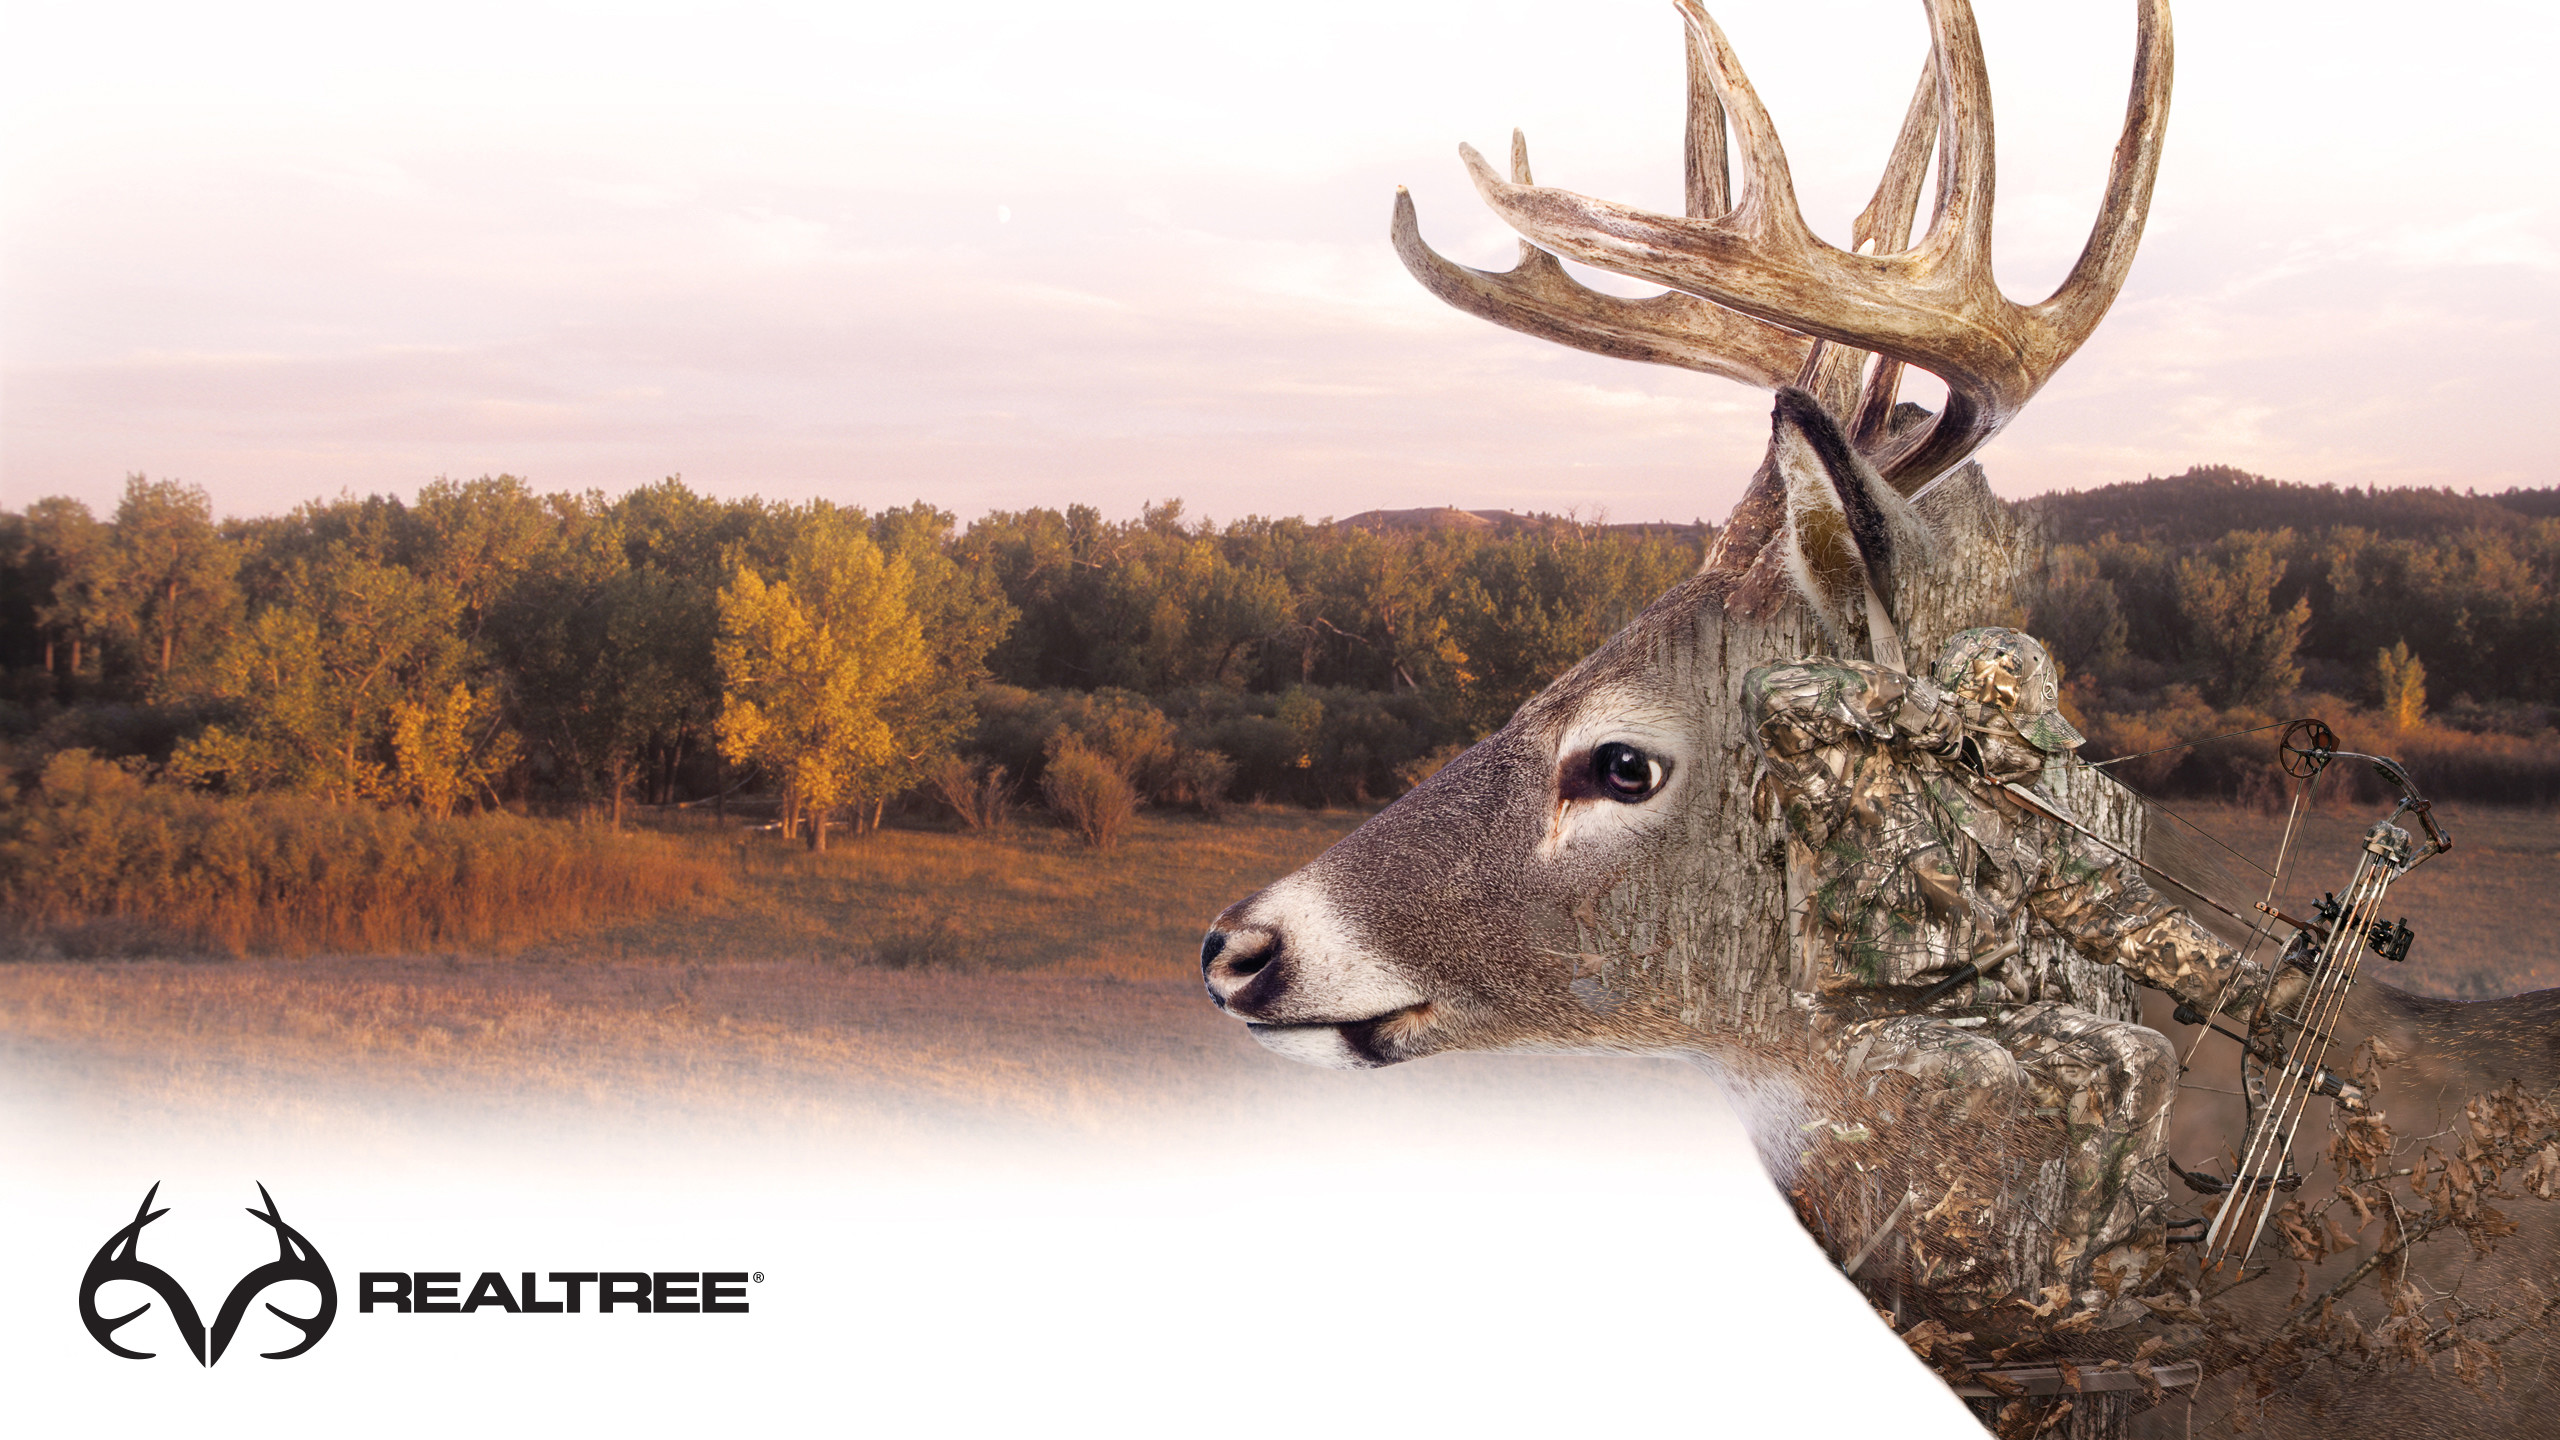 Res: 2560x1440, outdoor hunting backgrounds. outdoor hunting backgrounds r